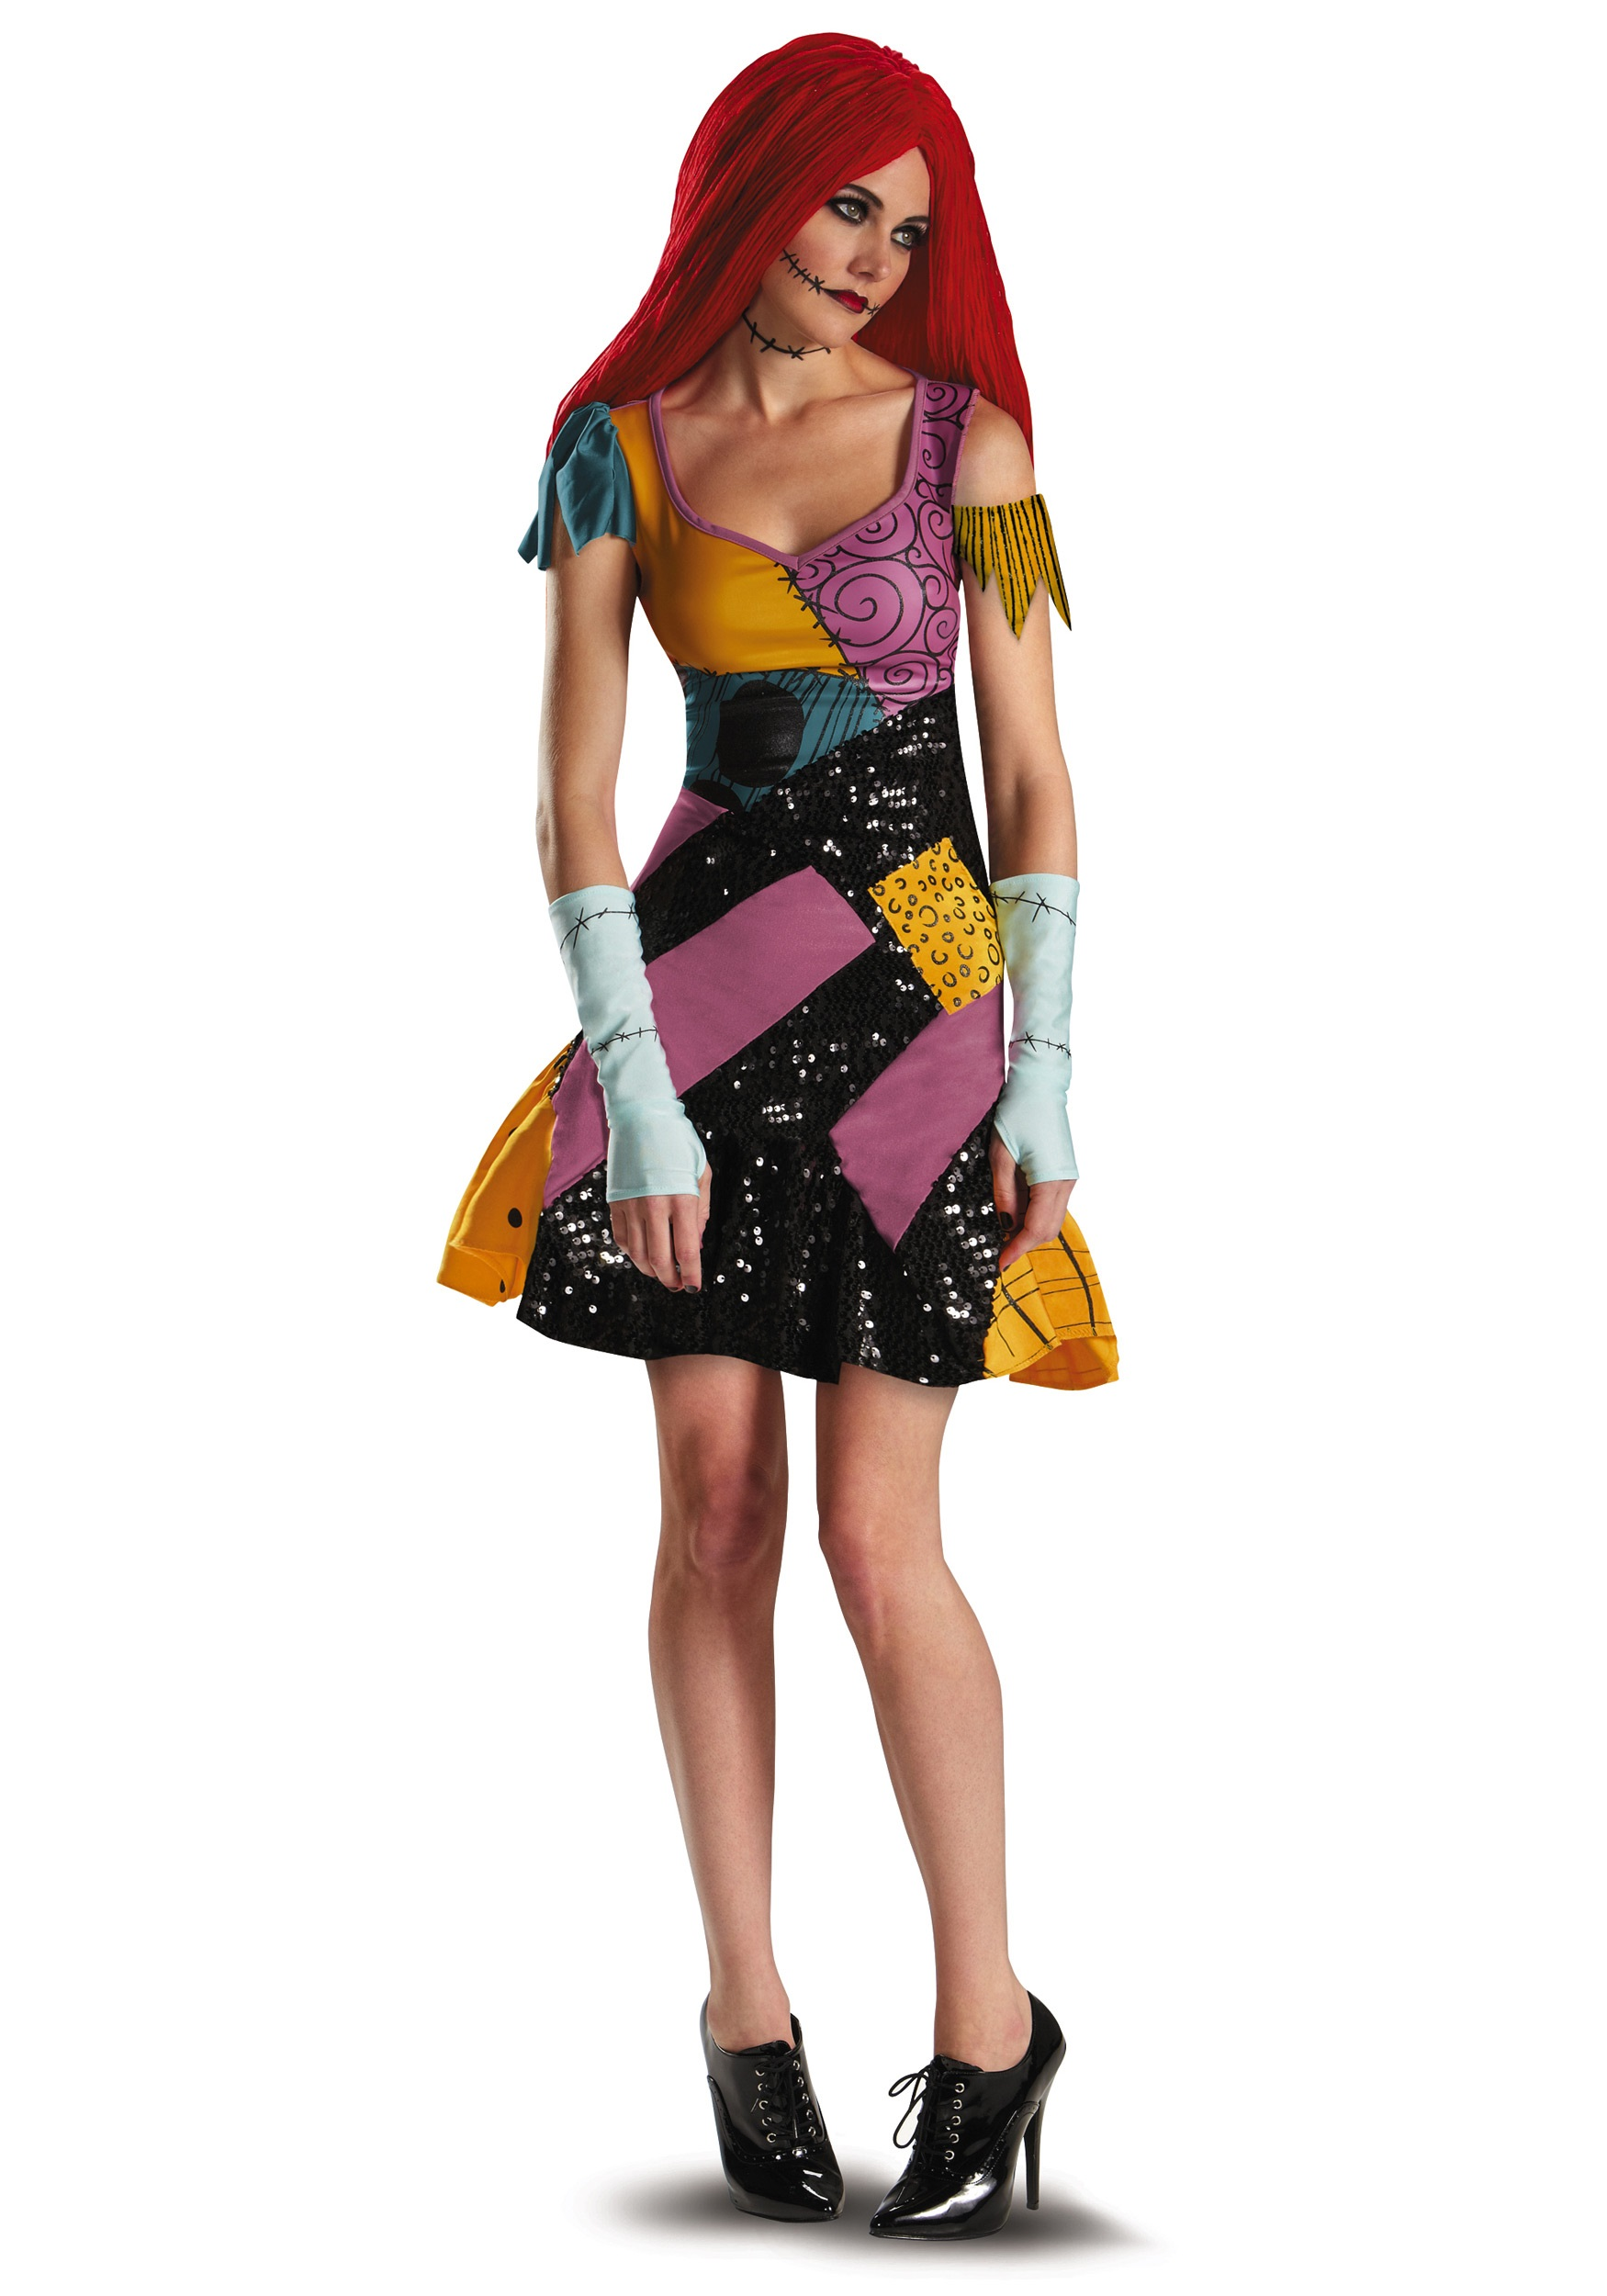 sally glam costume - Nightmare Before Christmas Halloween Costume